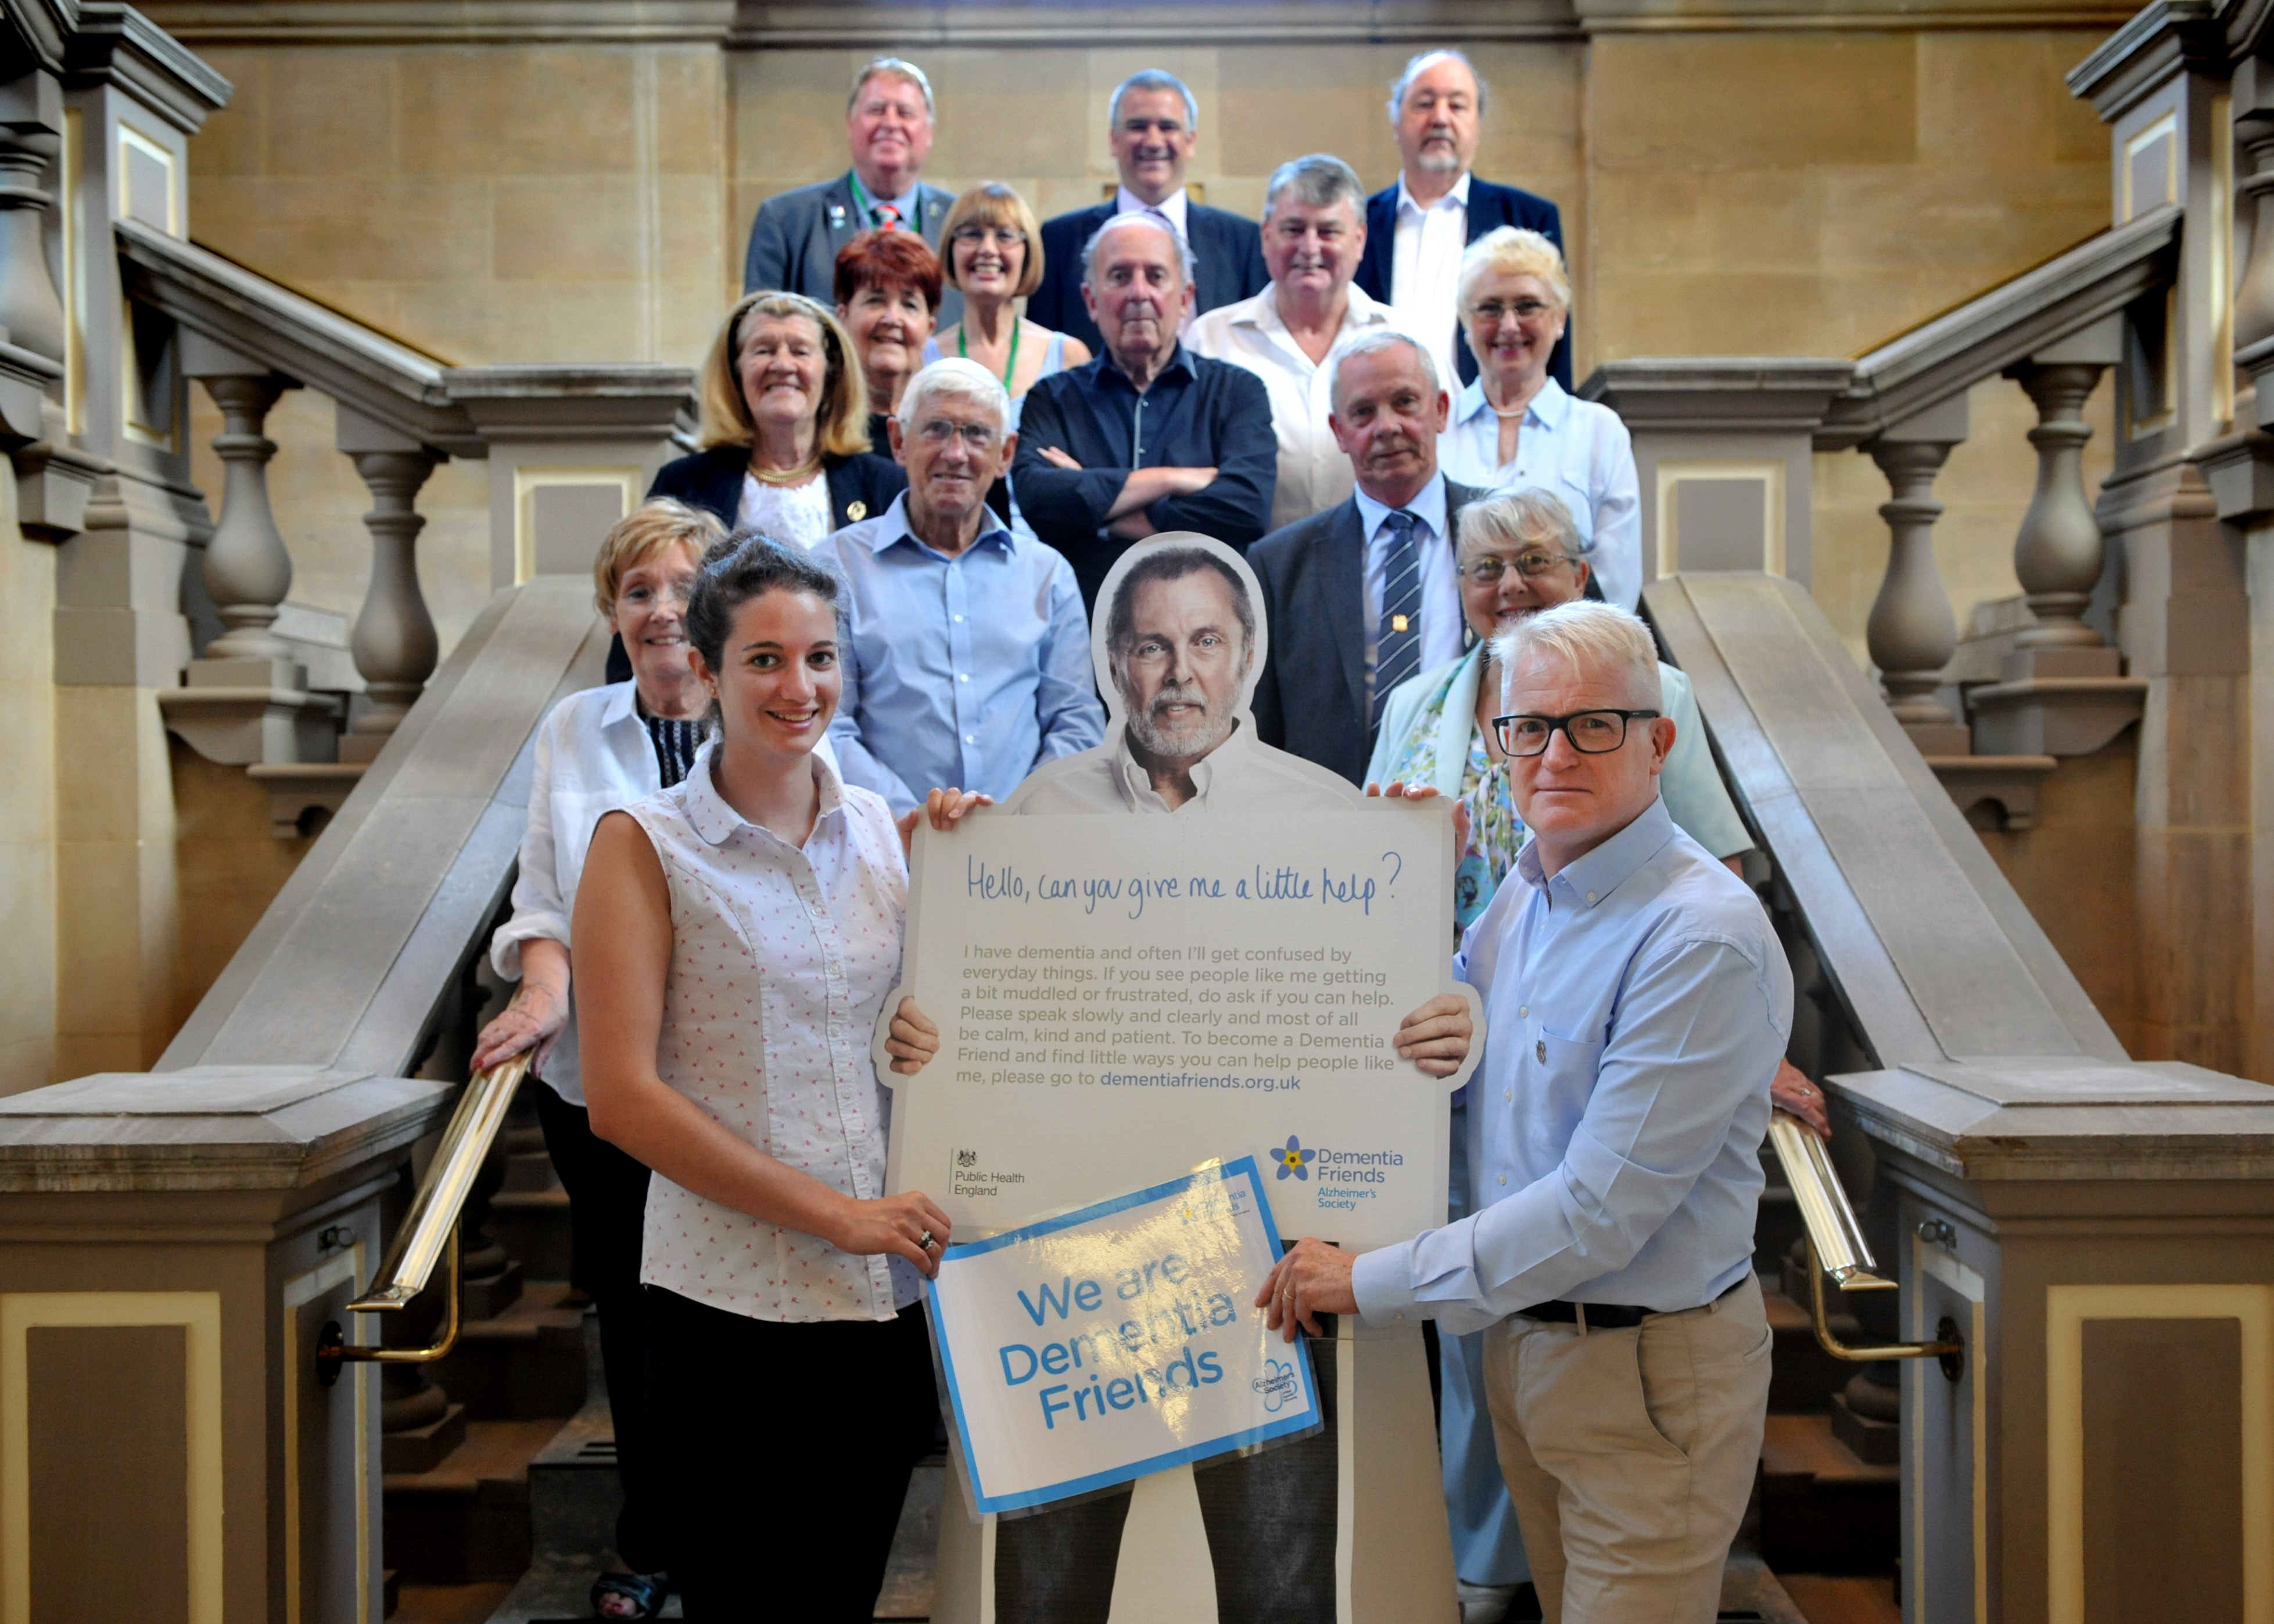 Dementia friendly councillors, dementia friendly council: Lessons from South Tyneside